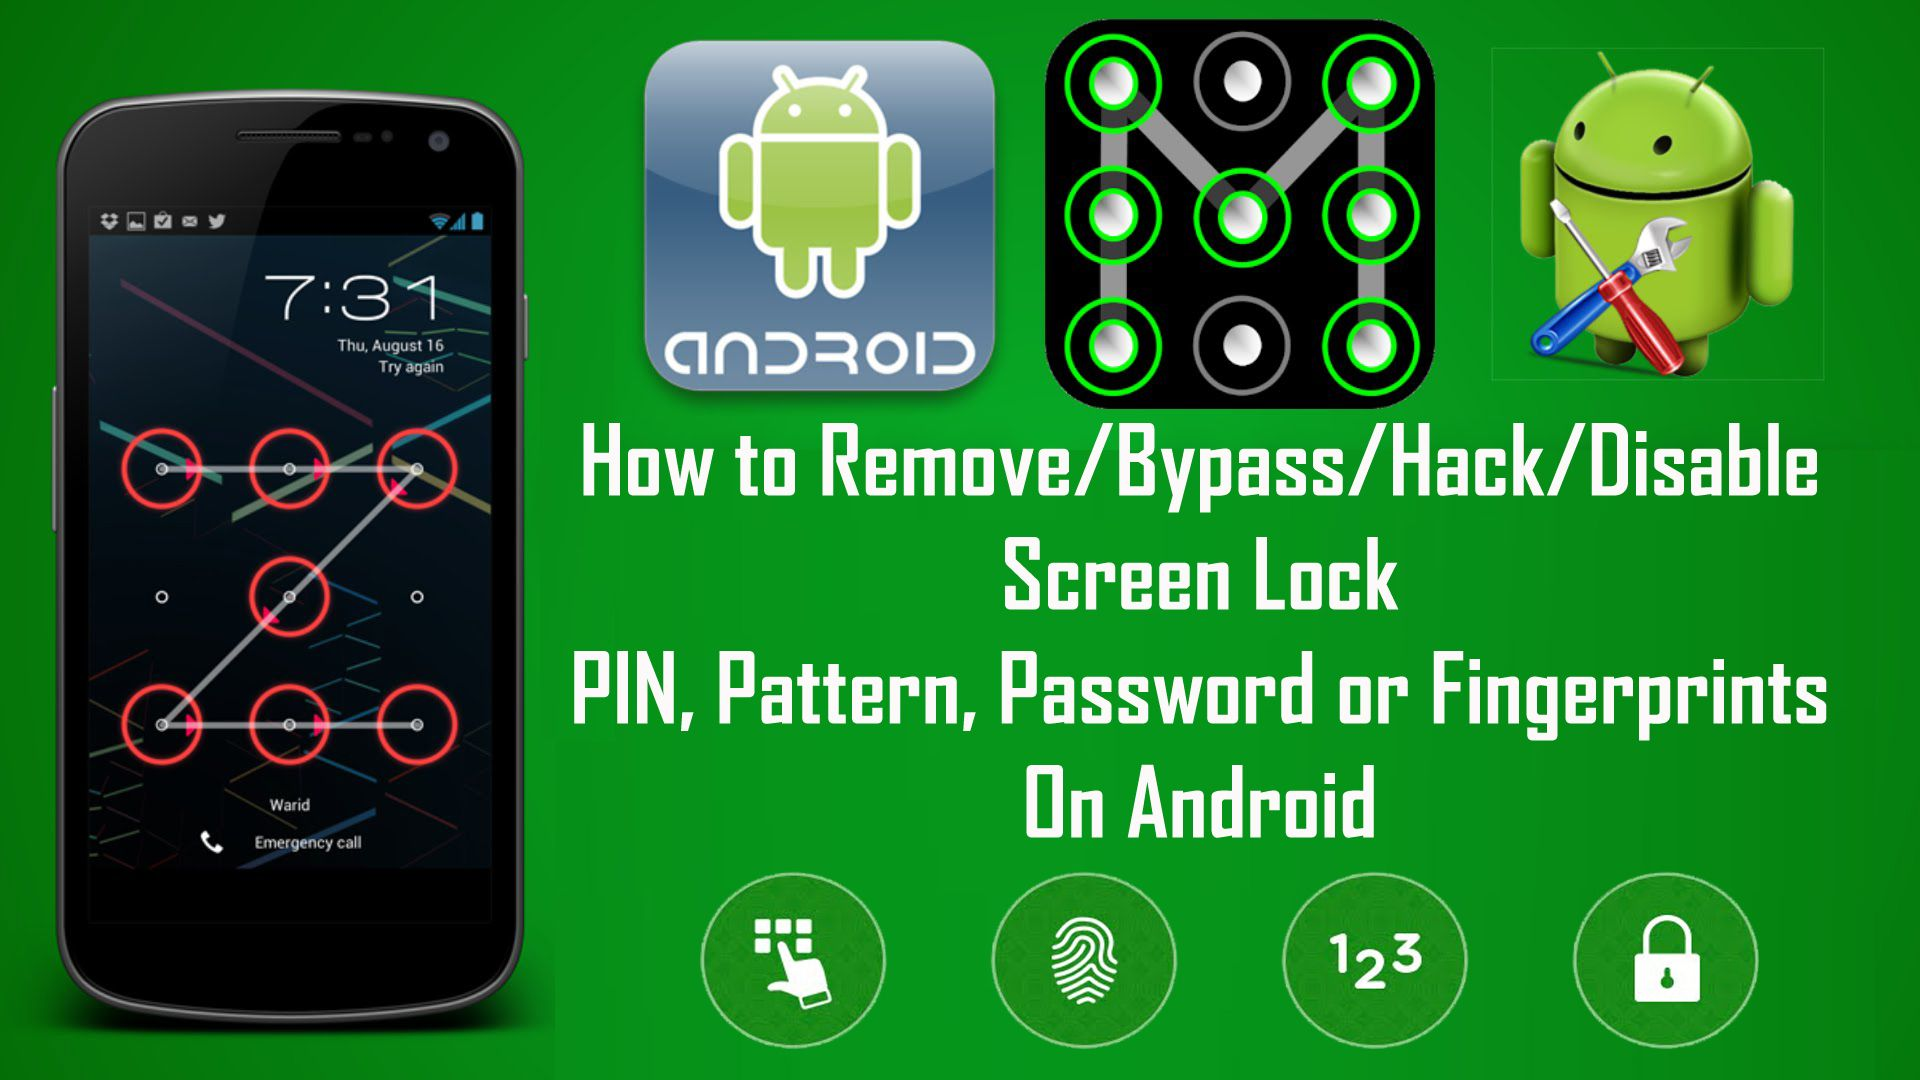 [Infographic] How to Bypass Android's Lock Screen Pattern